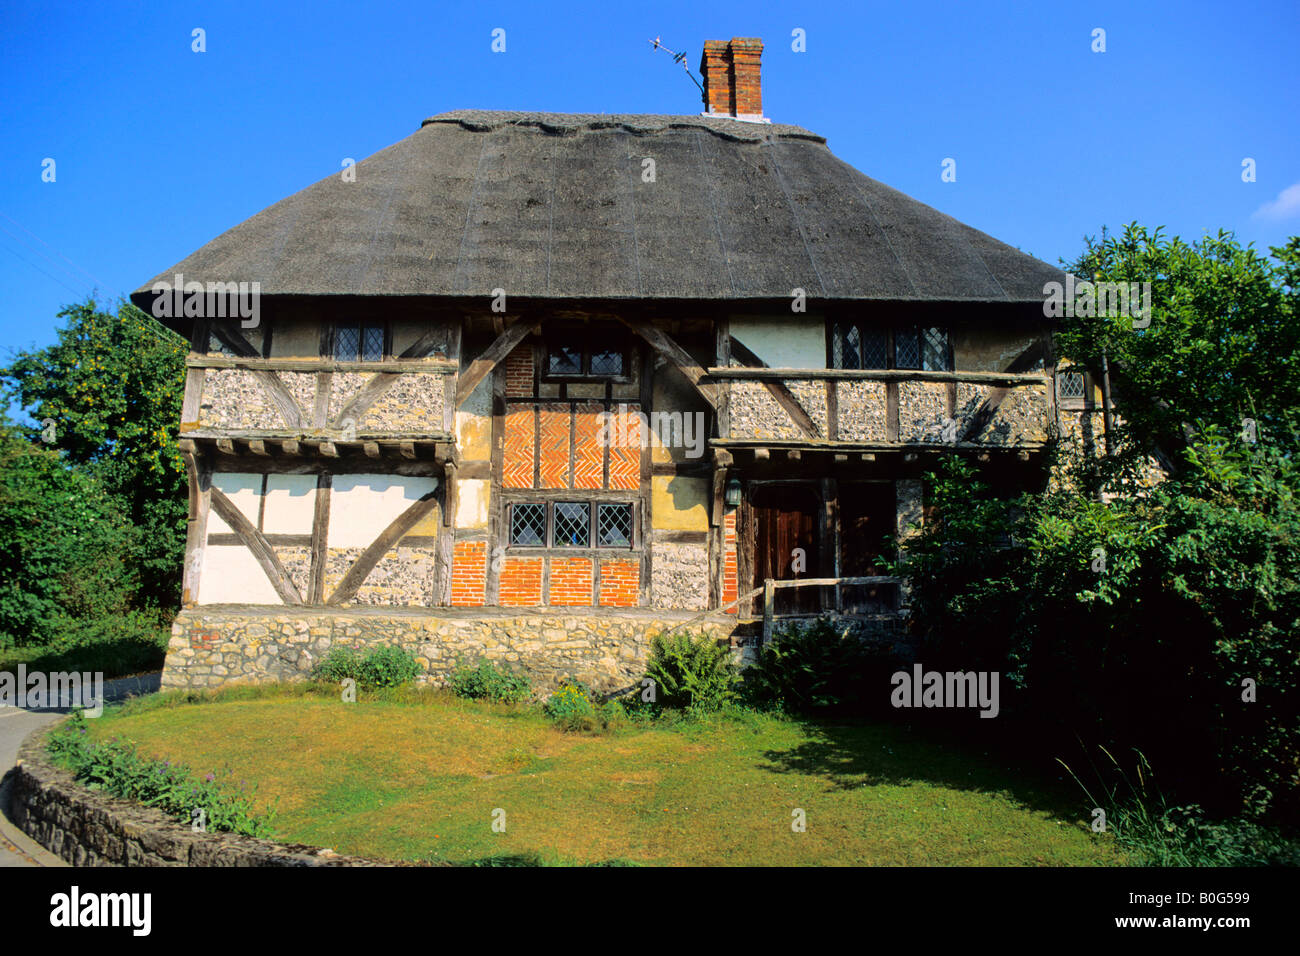 Yeomans House The Old Shop Bignor Sus England Uk